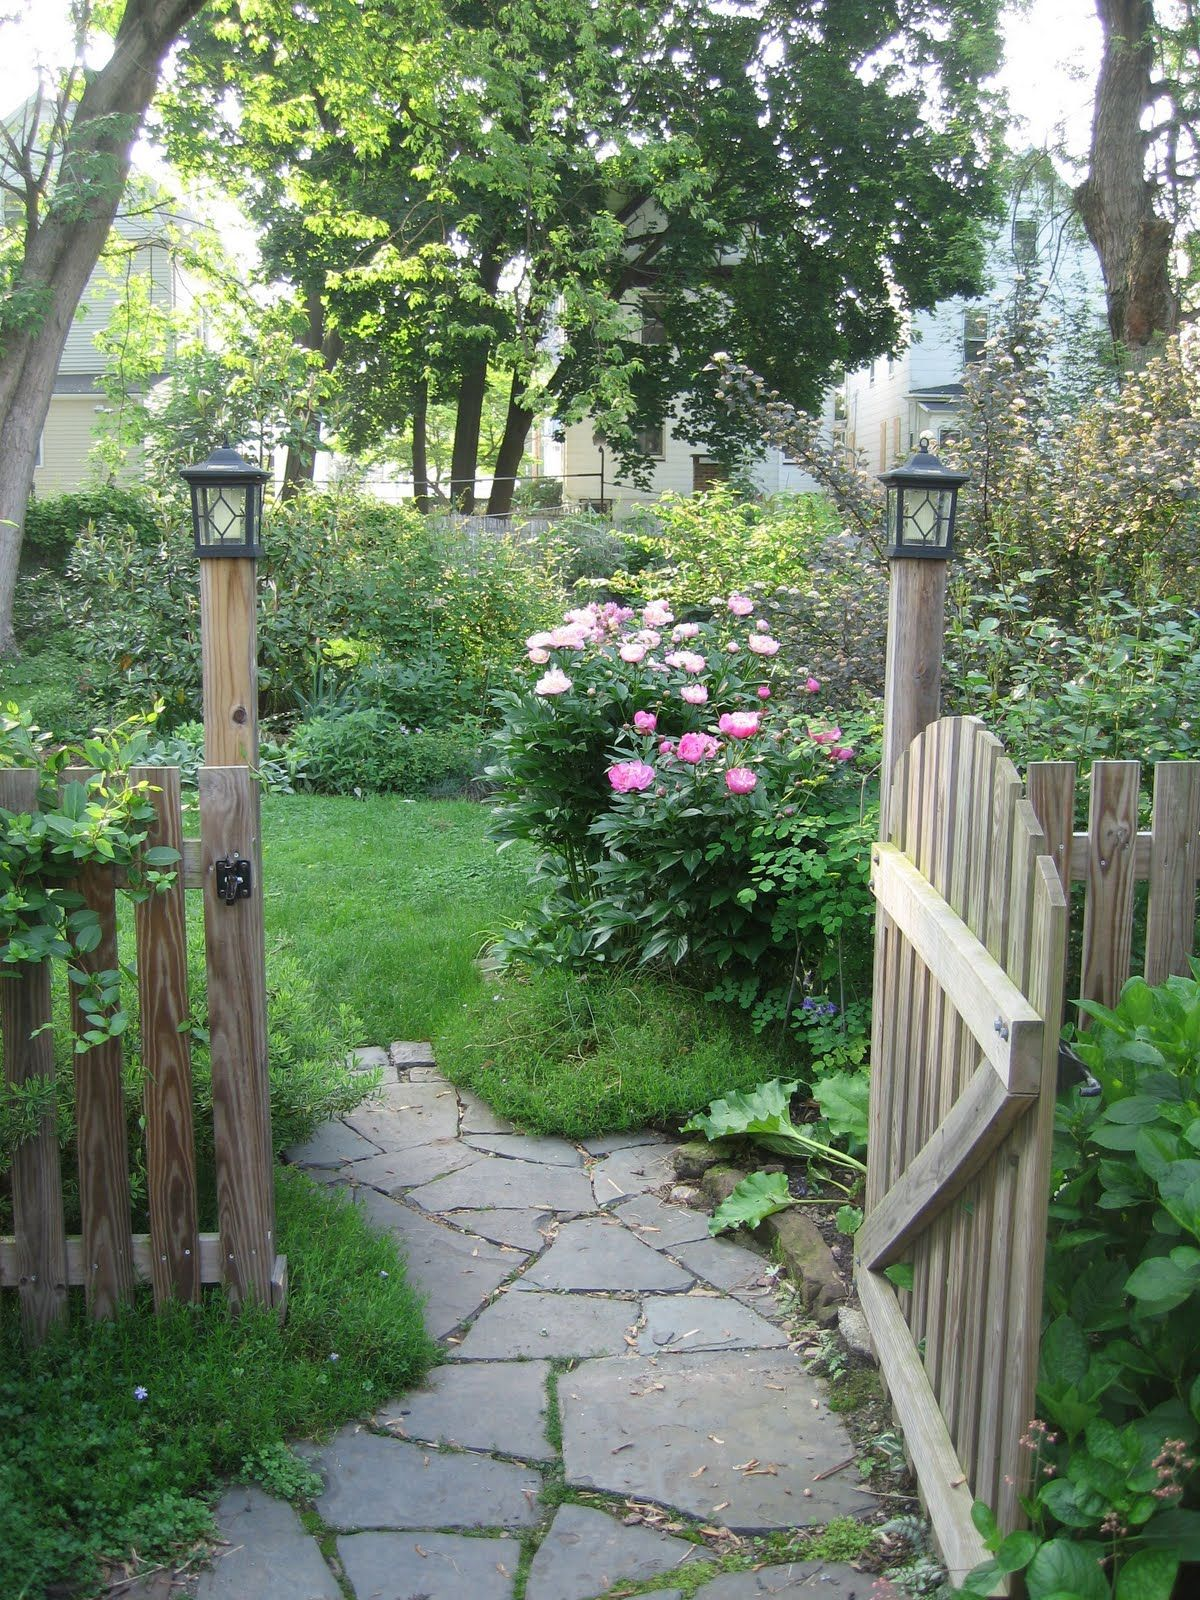 Pin by lisa szemkus on garden pinterest flagstone pathway